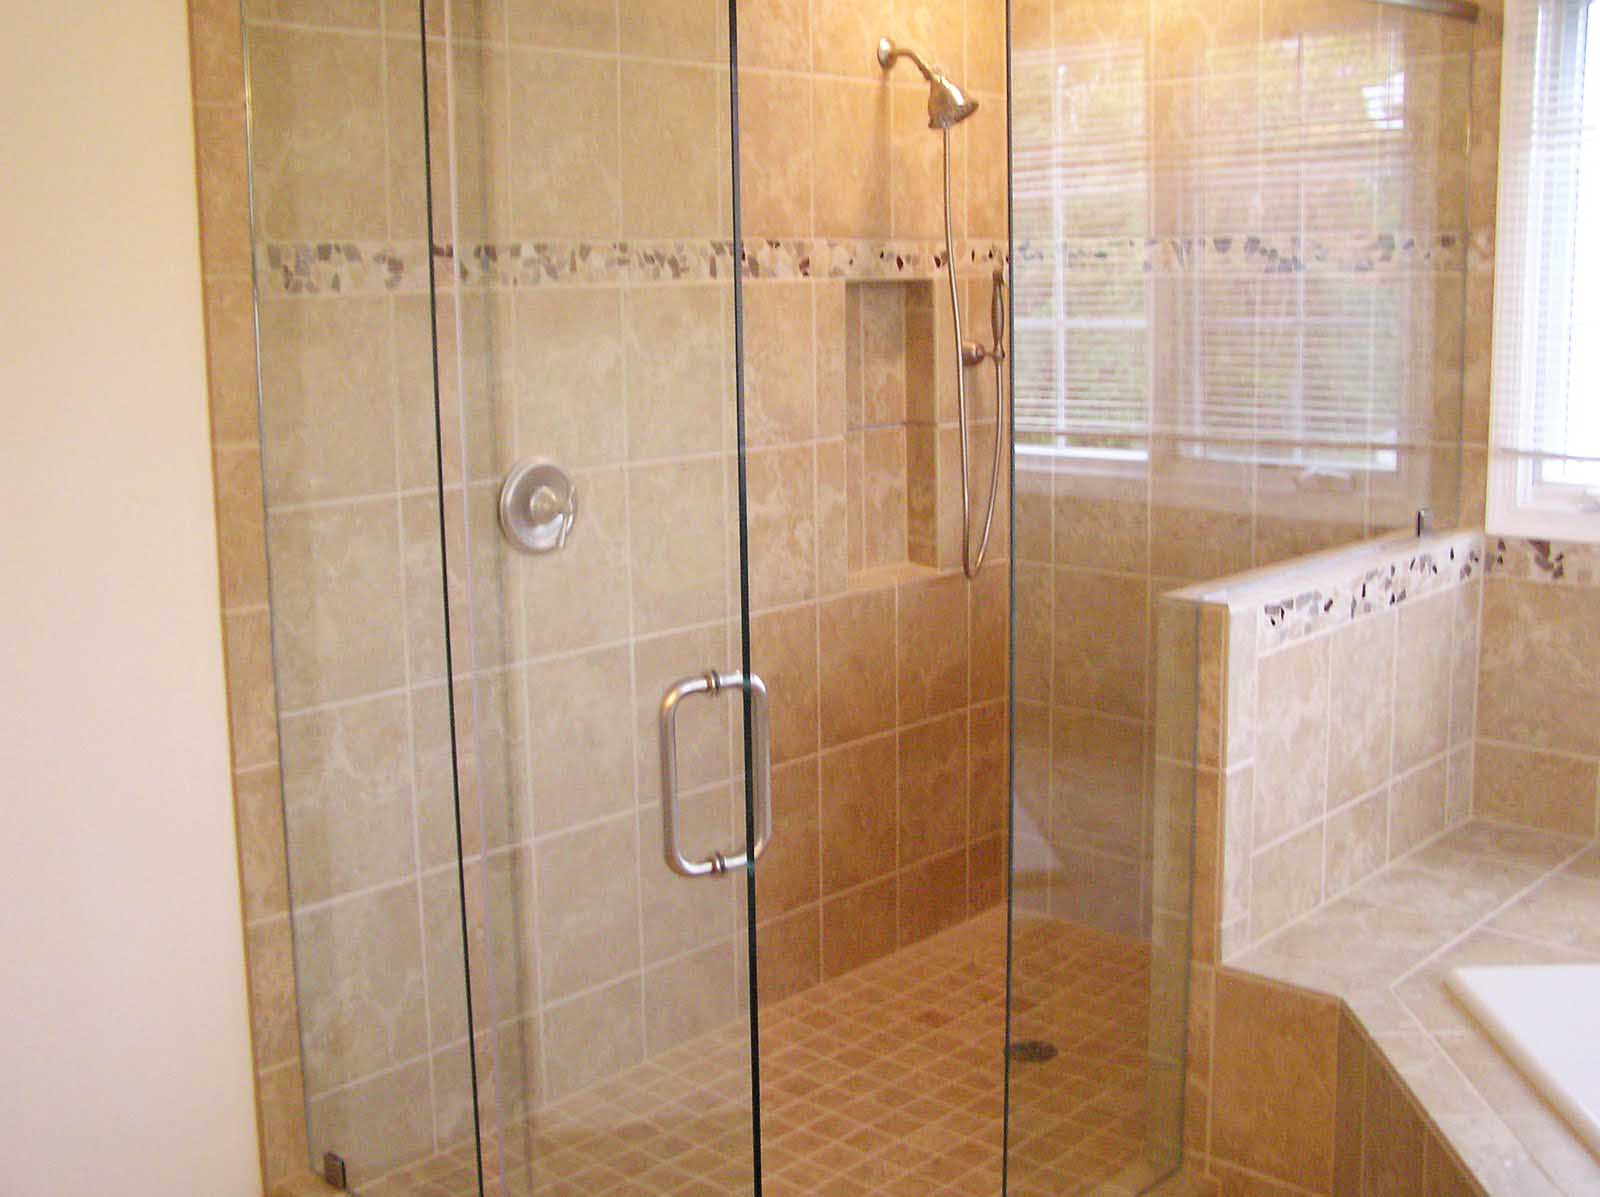 Modern bathroom shower designs - Fashionable Bathroom Shower Tile Ideas 1